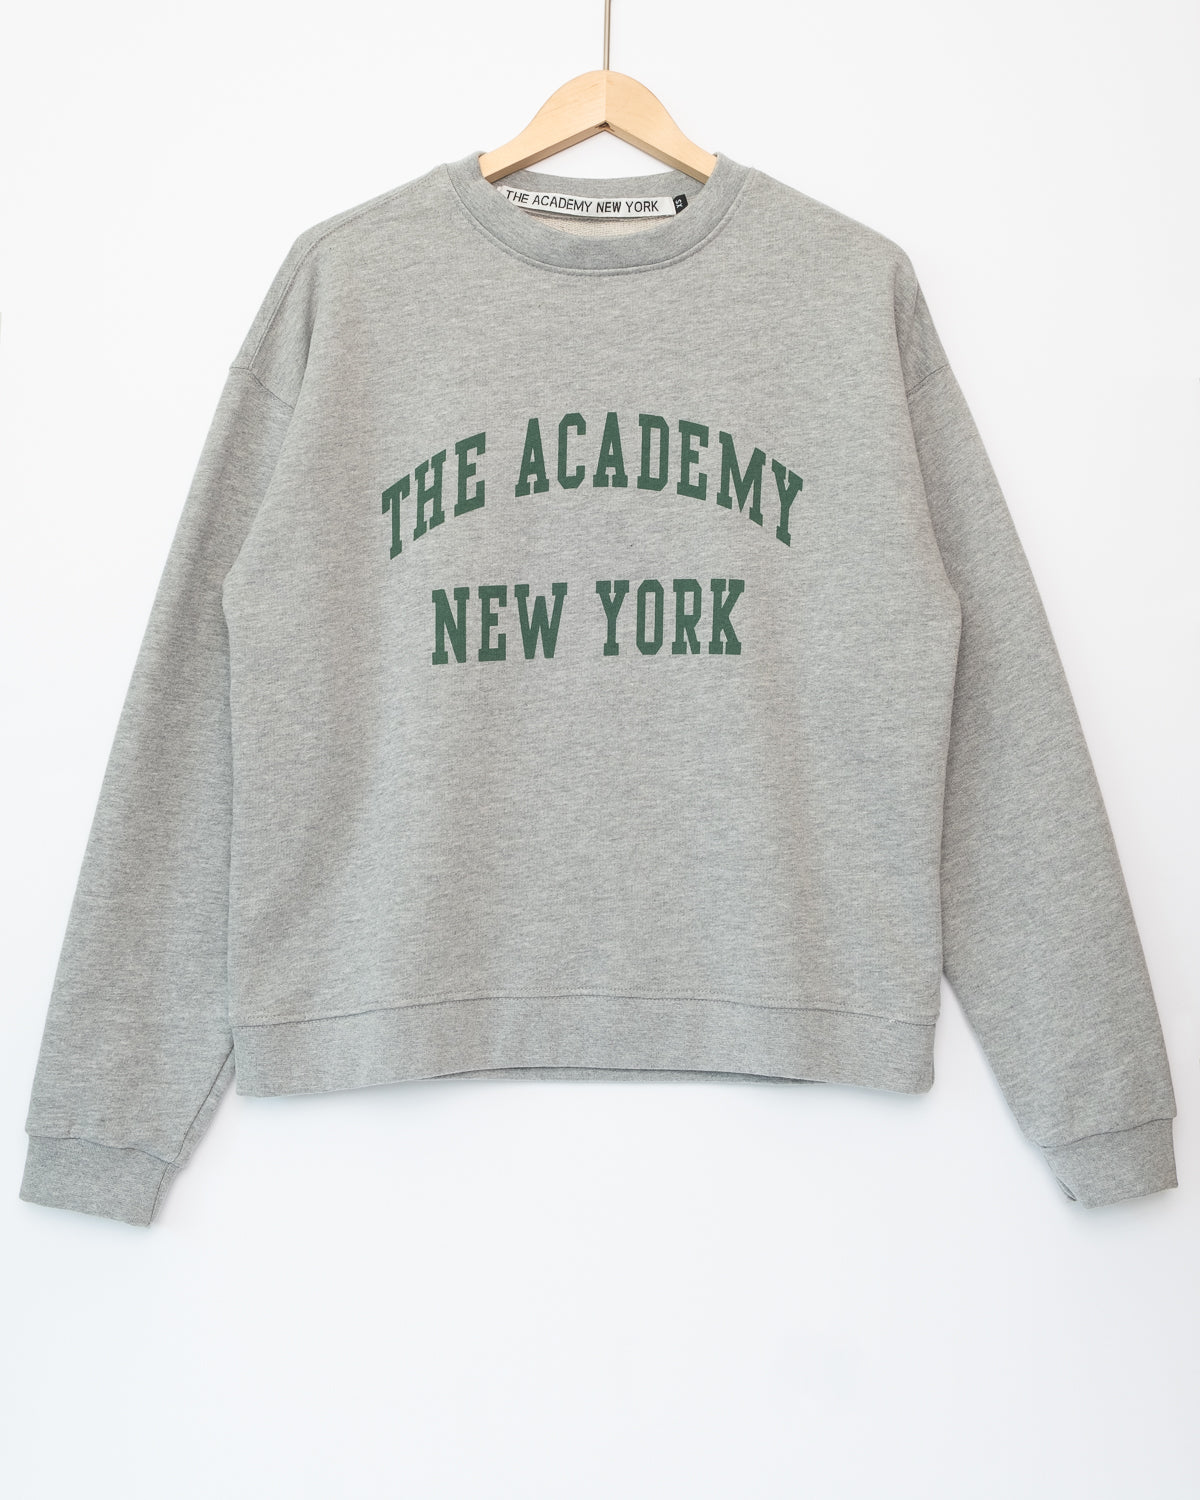 The Academy New York Box Fit Crewneck